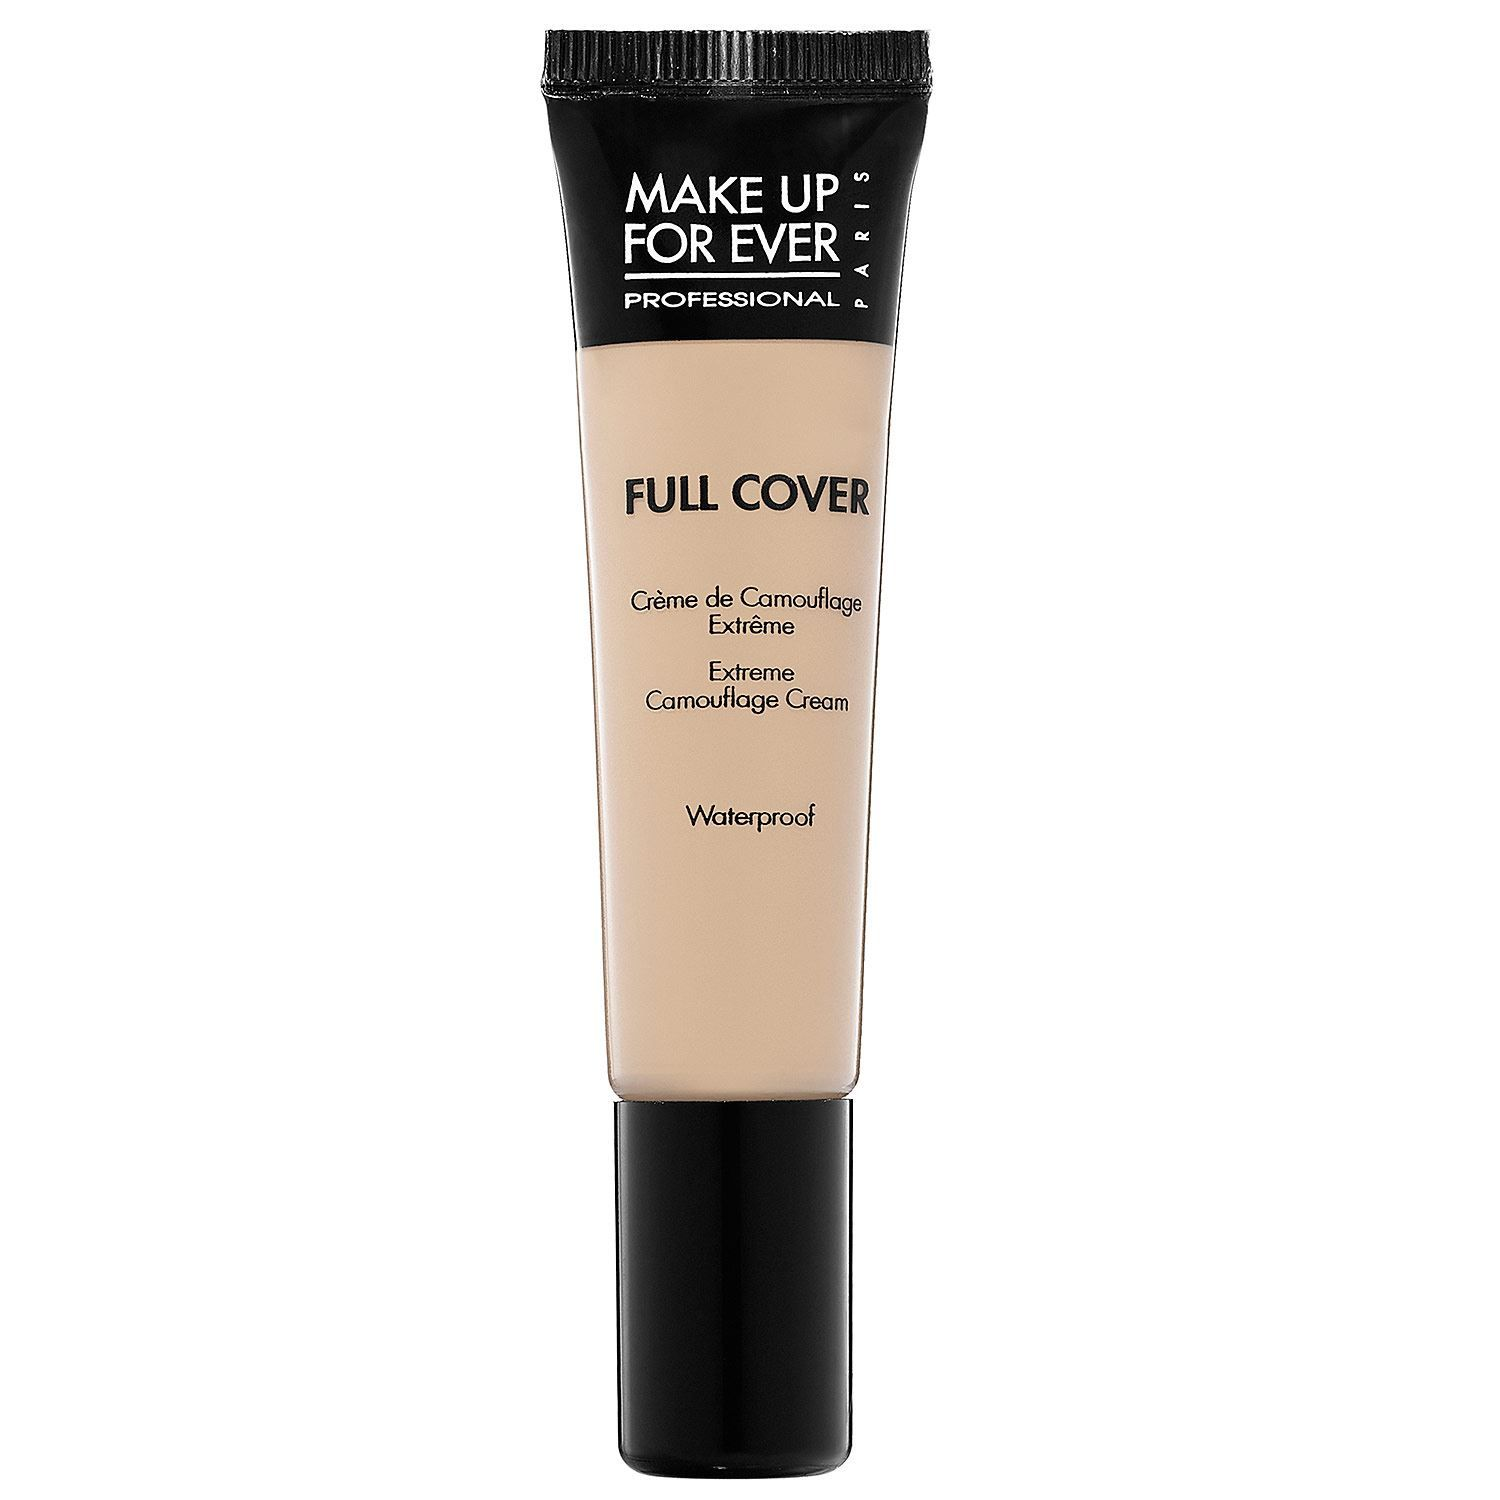 Make Up For Ever Full Cover Reviews